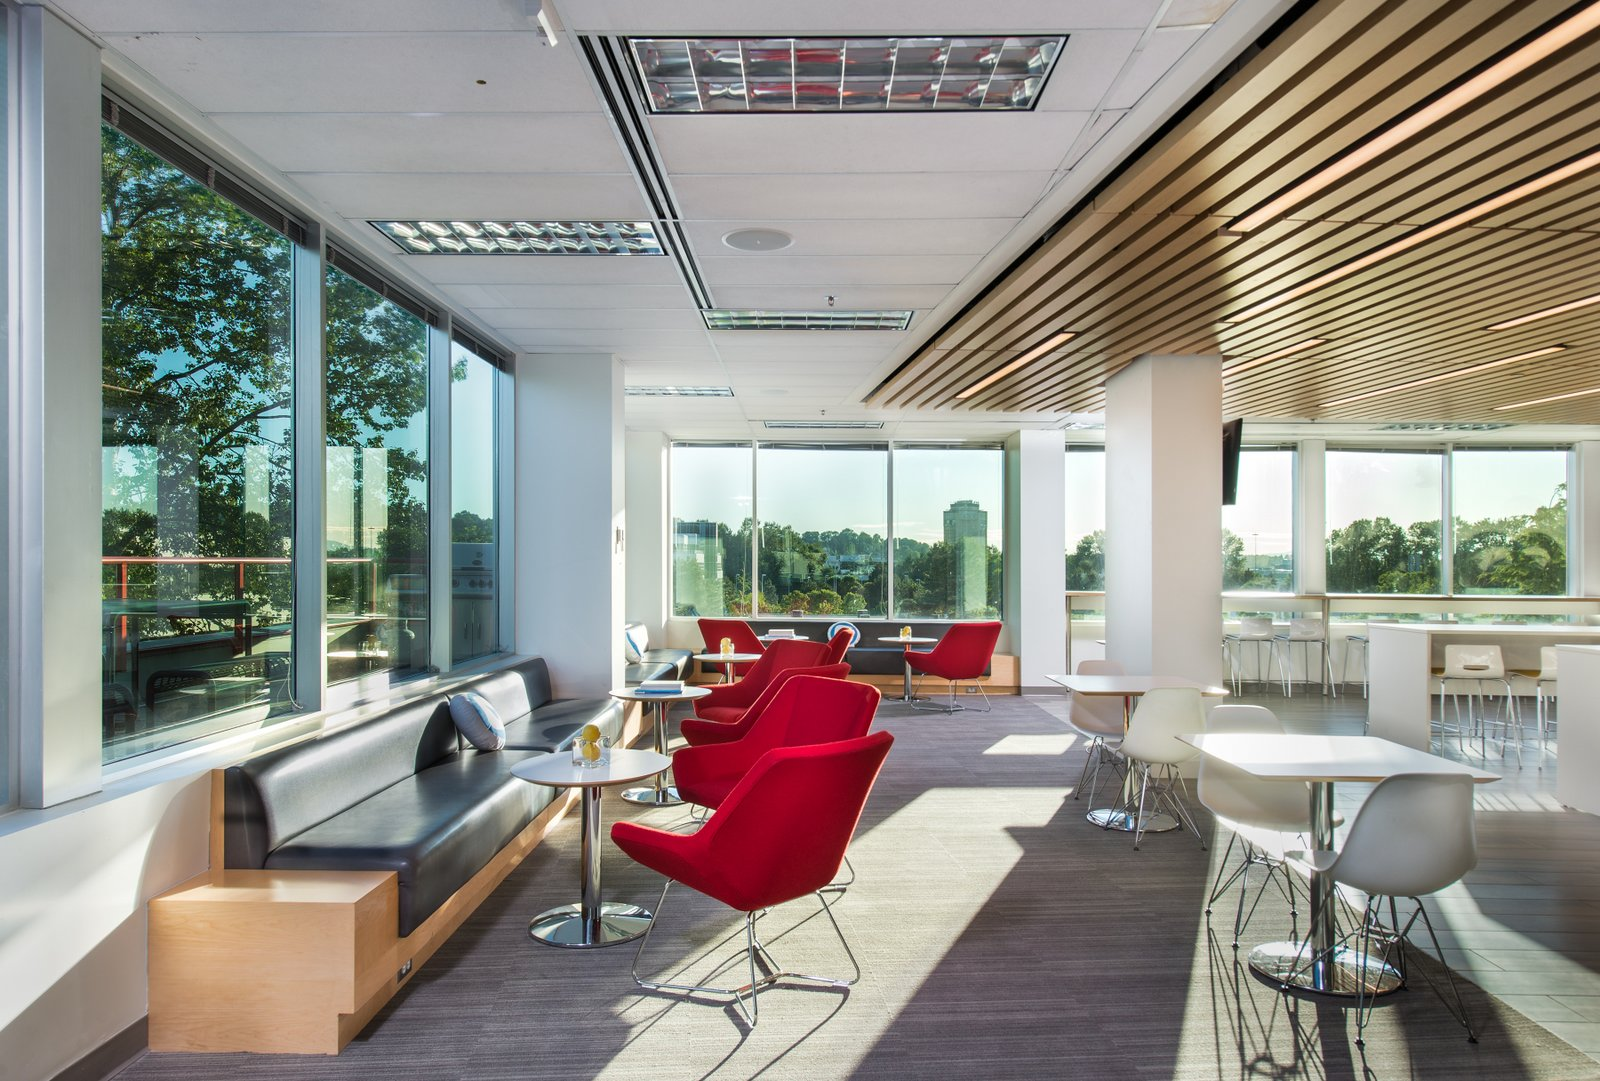 Remarkable 21 Office Interior Architecture Designs Decorating Ideas Largest Home Design Picture Inspirations Pitcheantrous